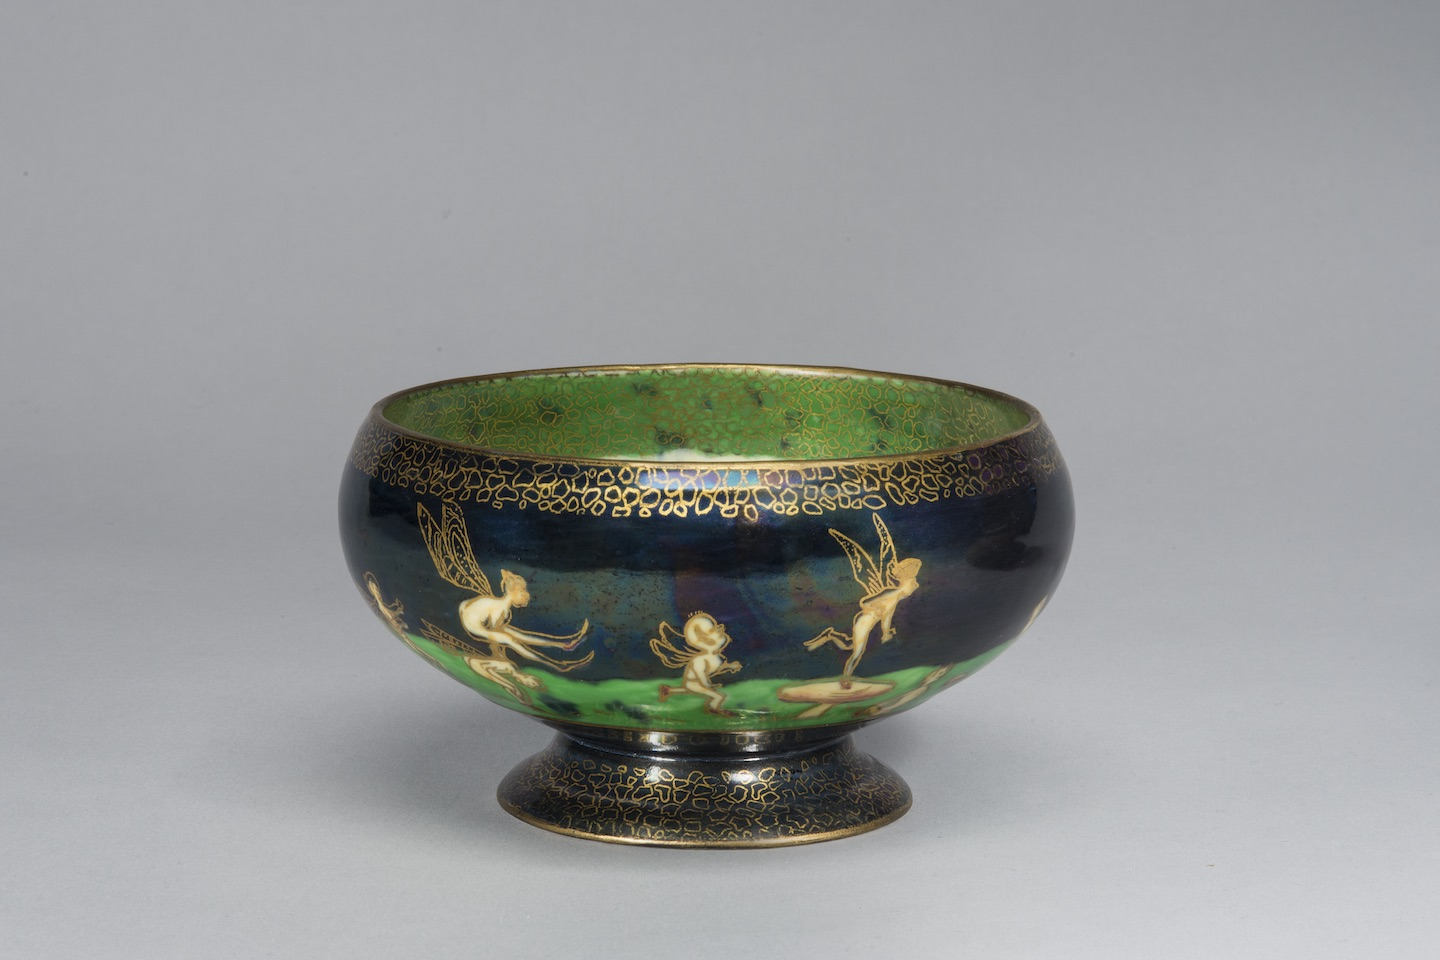 Porcelain pedestal bowl featuring an iridescent lustreware glaze. Around the bowl, winged fairies and sprites cavort on a vibrant green field set against a deep blue background. The figures and the decorative elements along the rim and foot of the bowl are outlined in gold cloisonne.